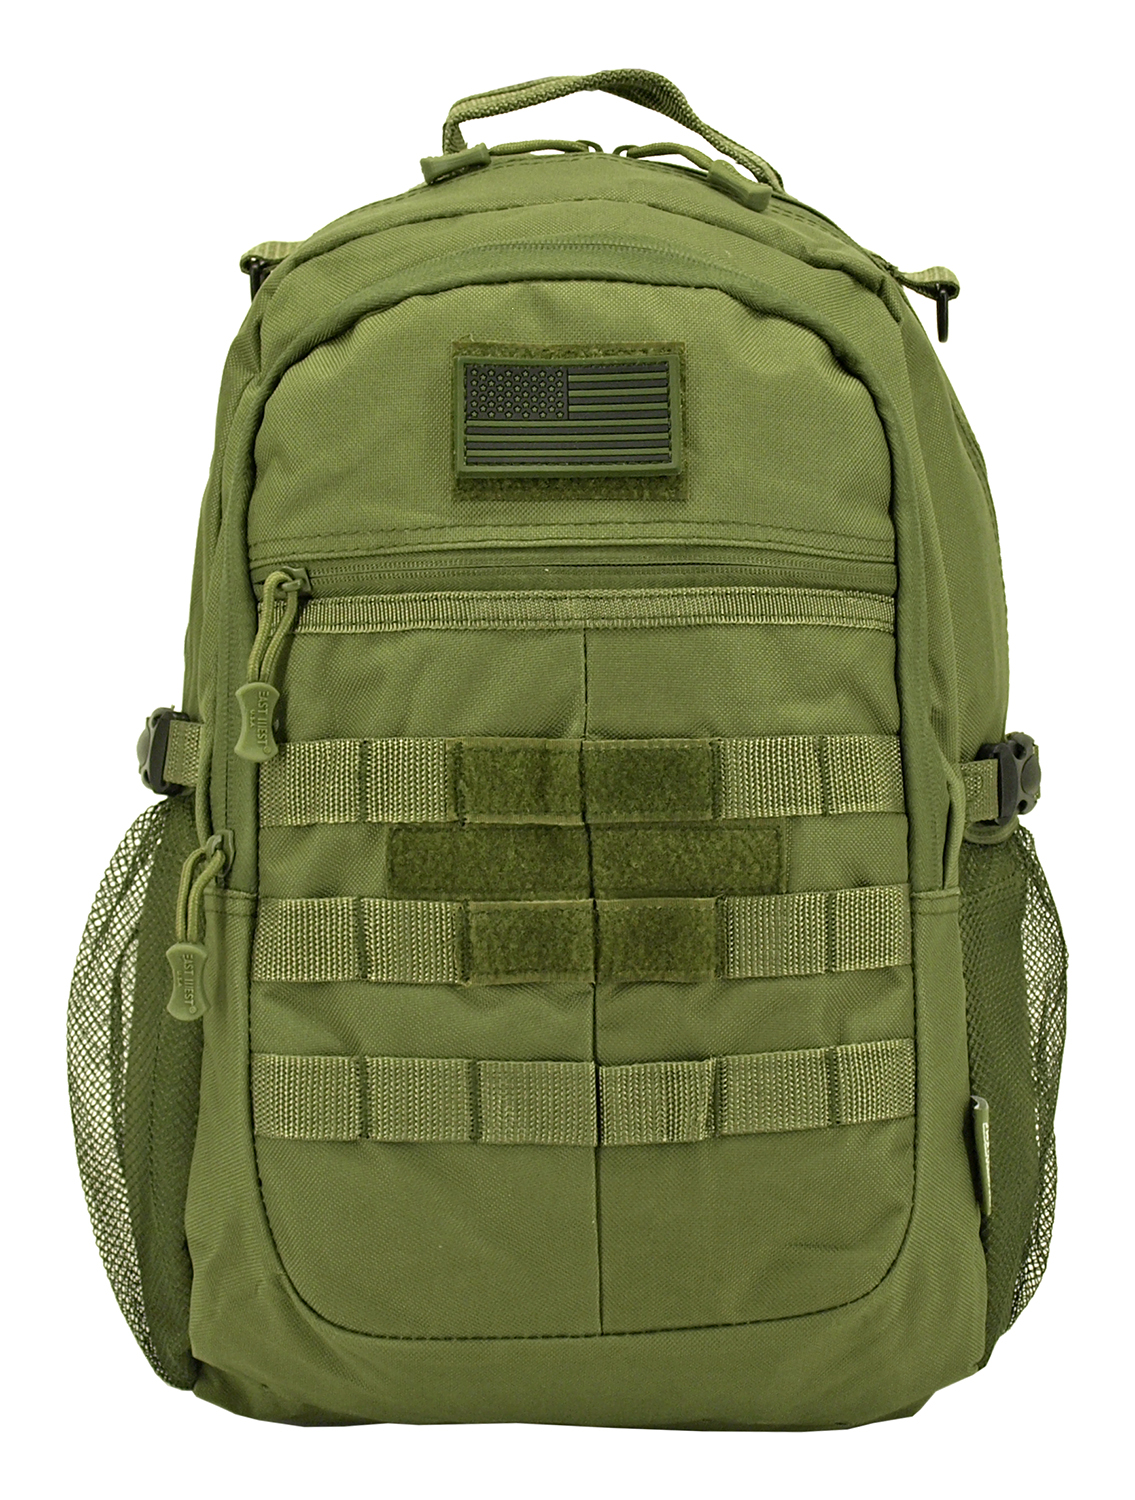 The Tactical Tradition Backpack - Olive Green